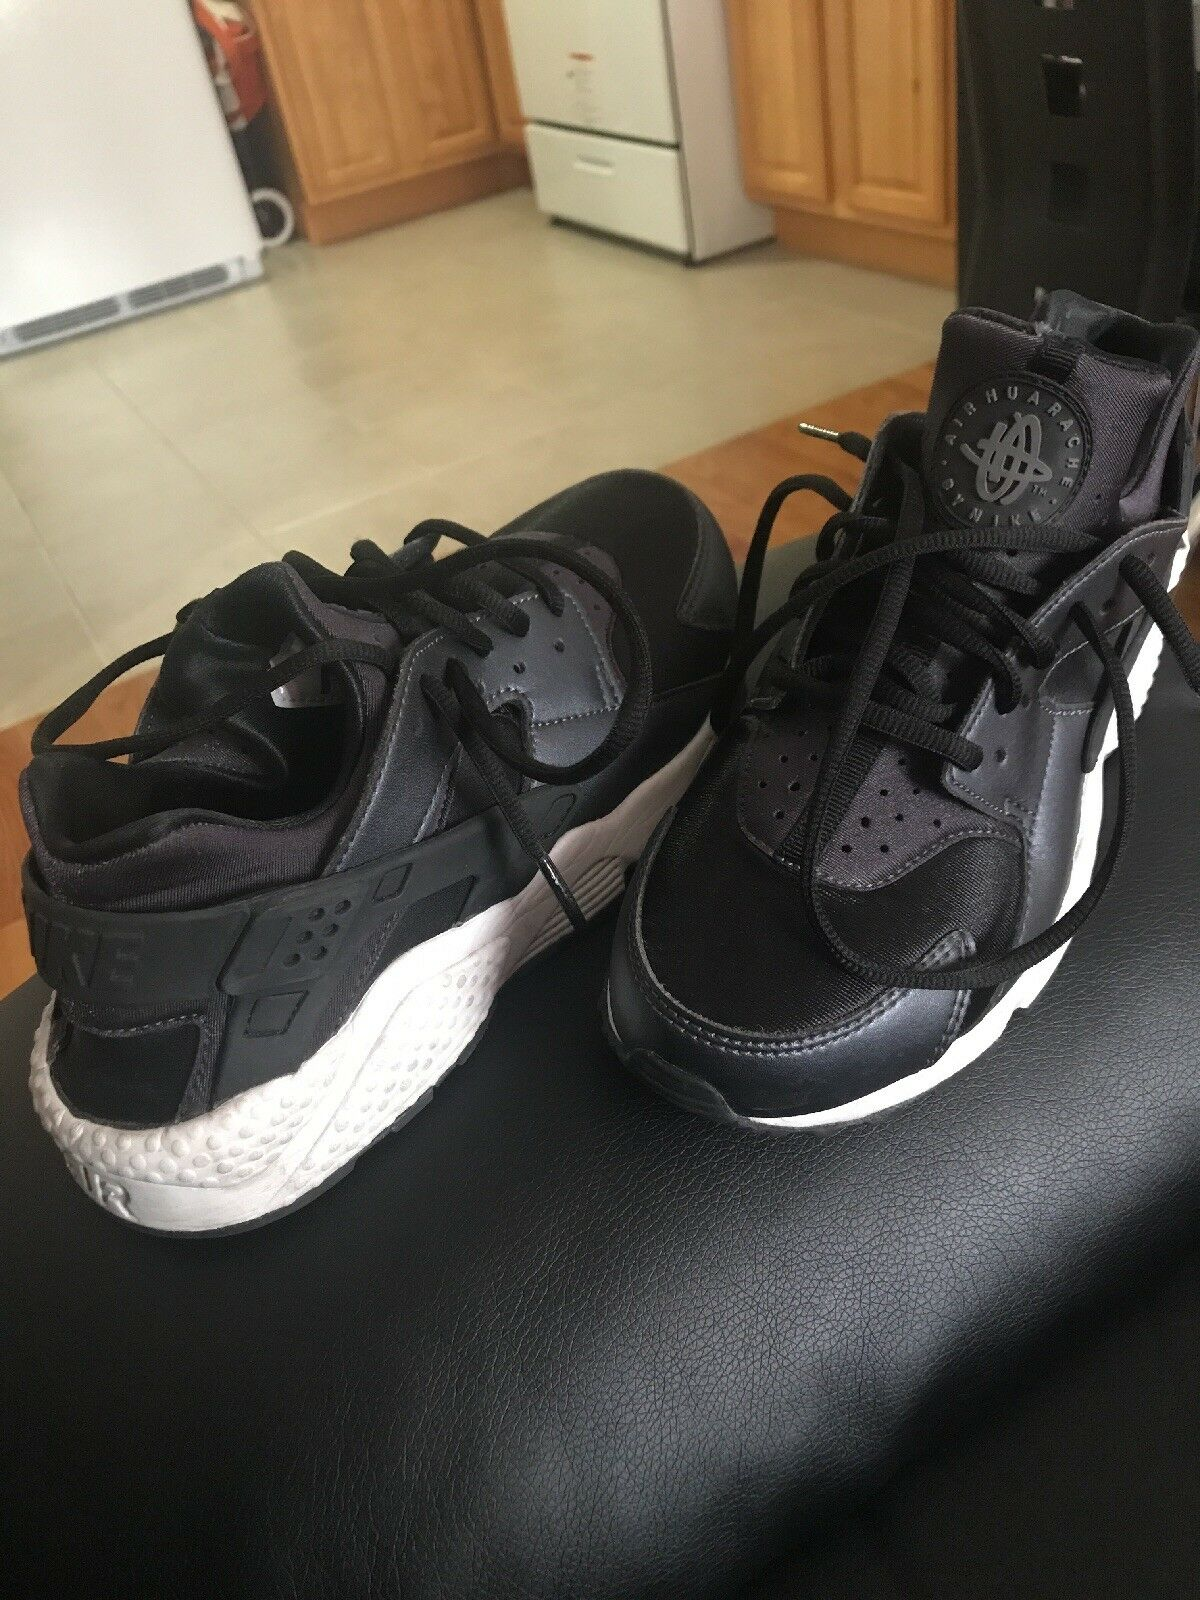 Sneakers size 8 in women's  Cheap and fashionable